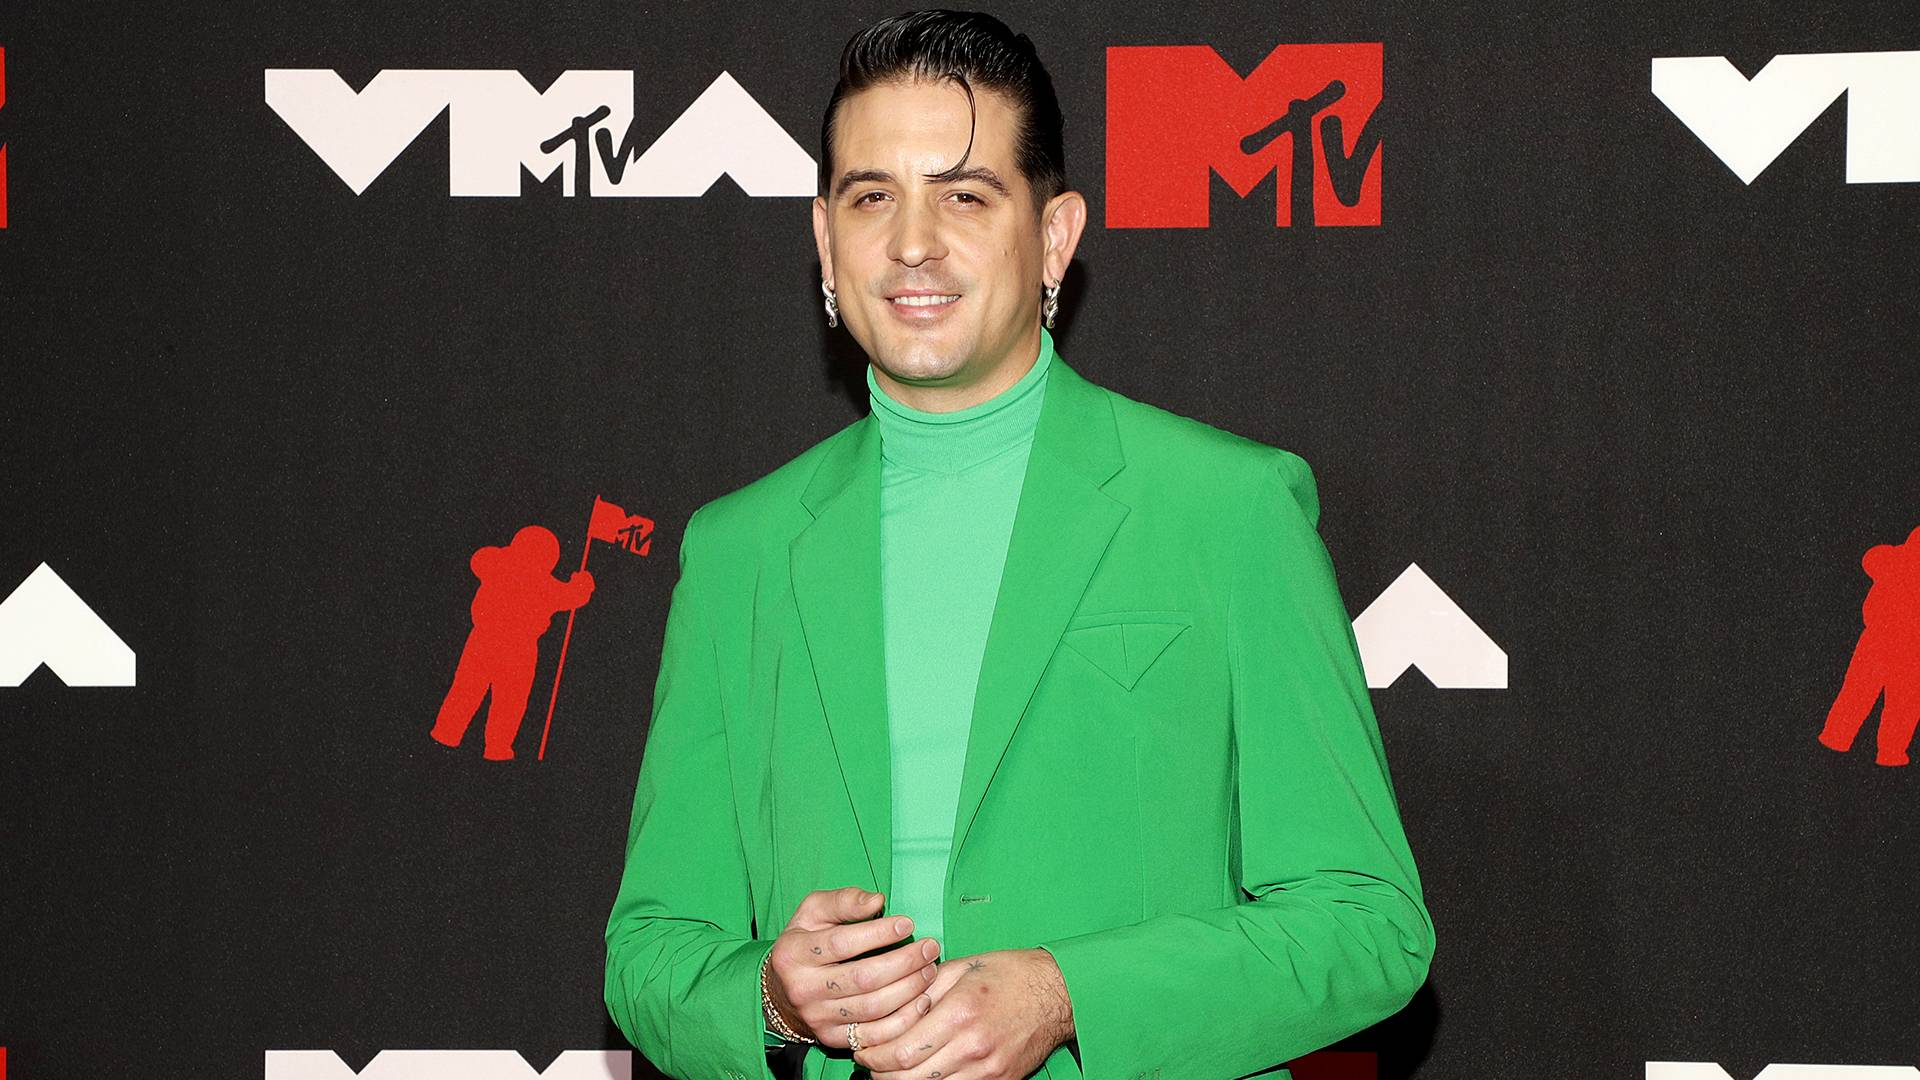 MTV Video Music Awards 2021 | The Best of the VMAs 2021 Red Carpet | G-Eazy | 1920x1080